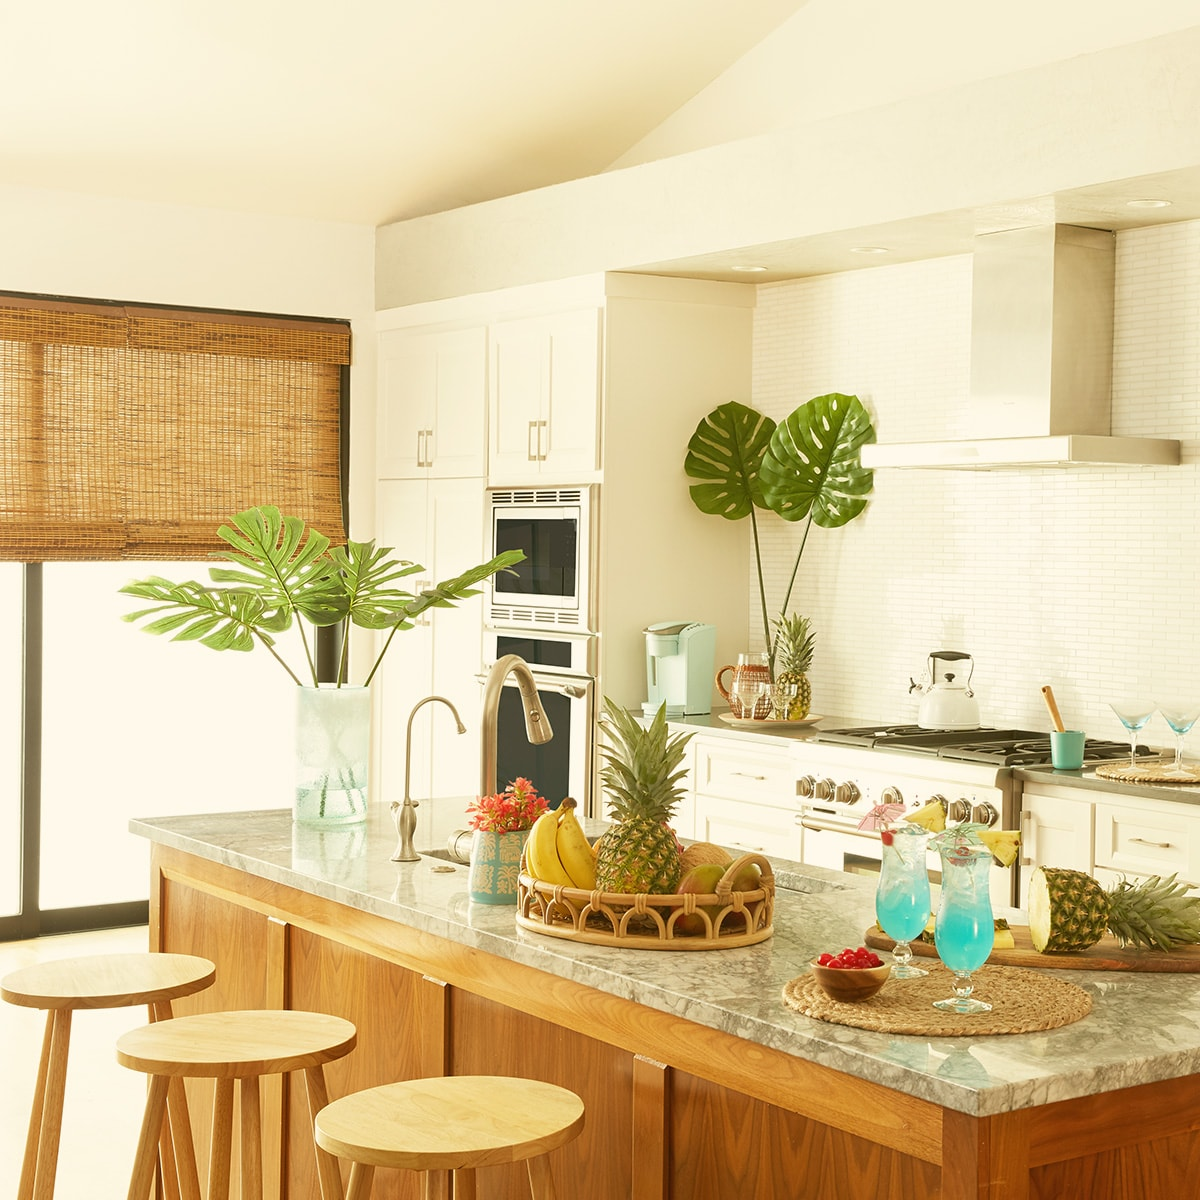 Tropical themed kitchen